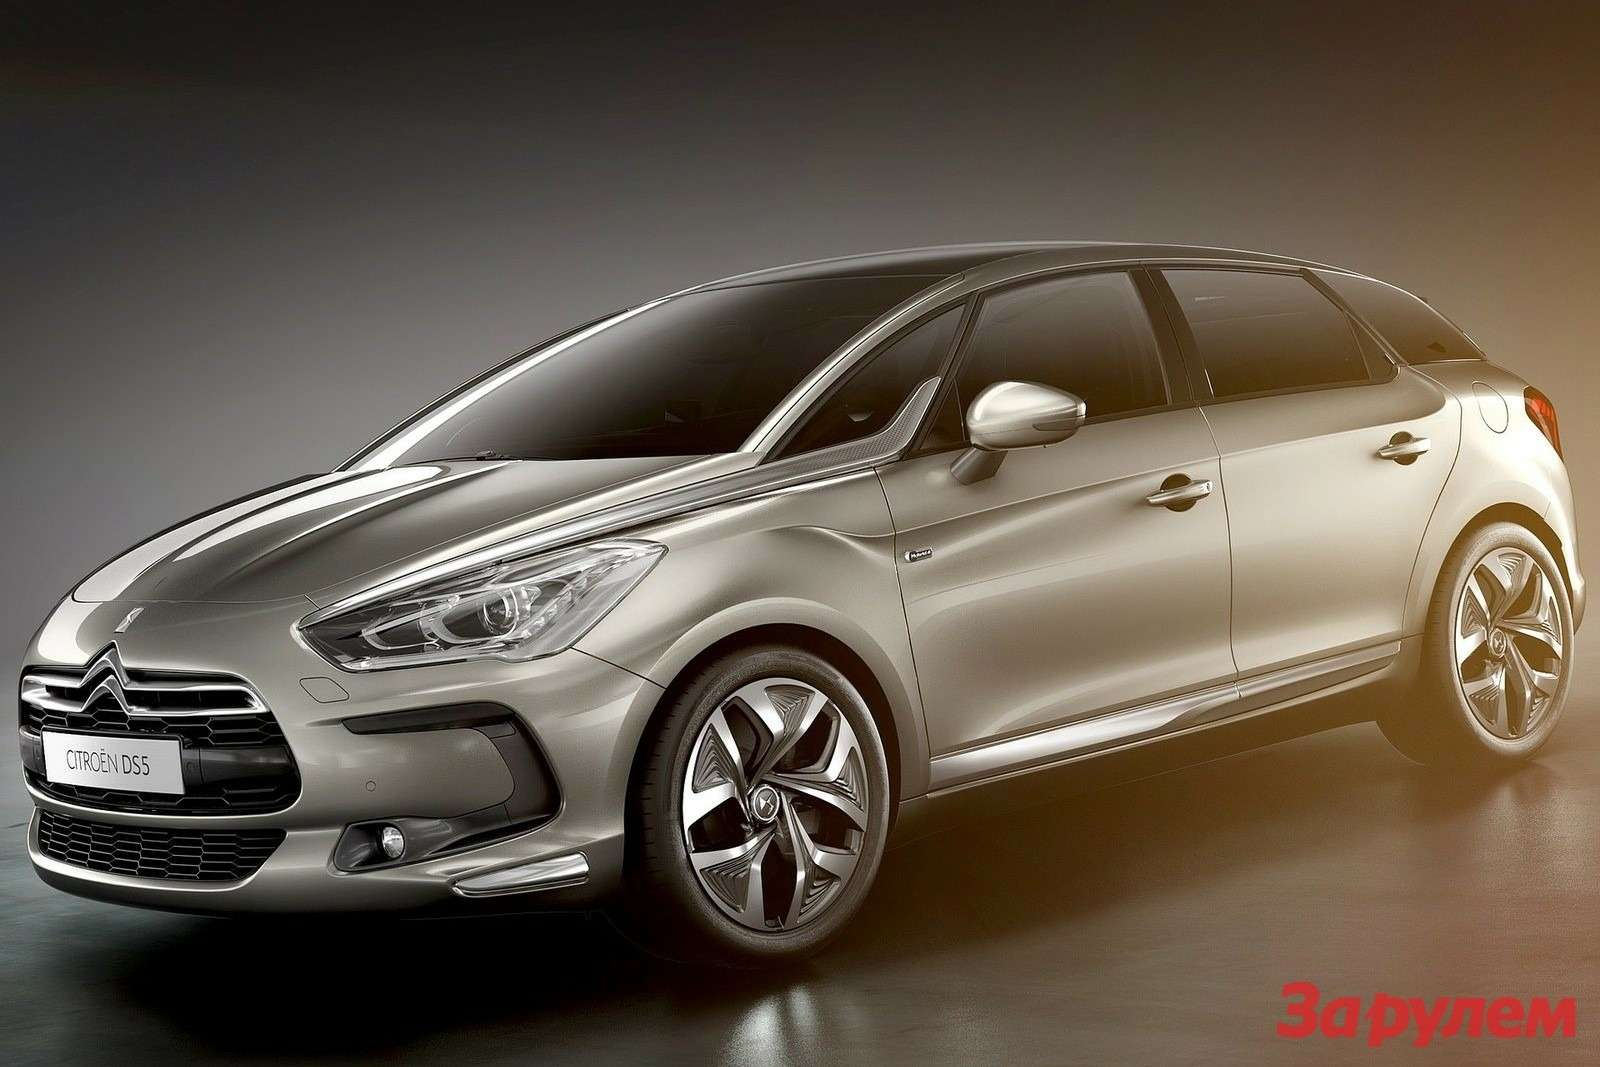 Citroen-DS5_2012_1600x1200_wallpaper_02